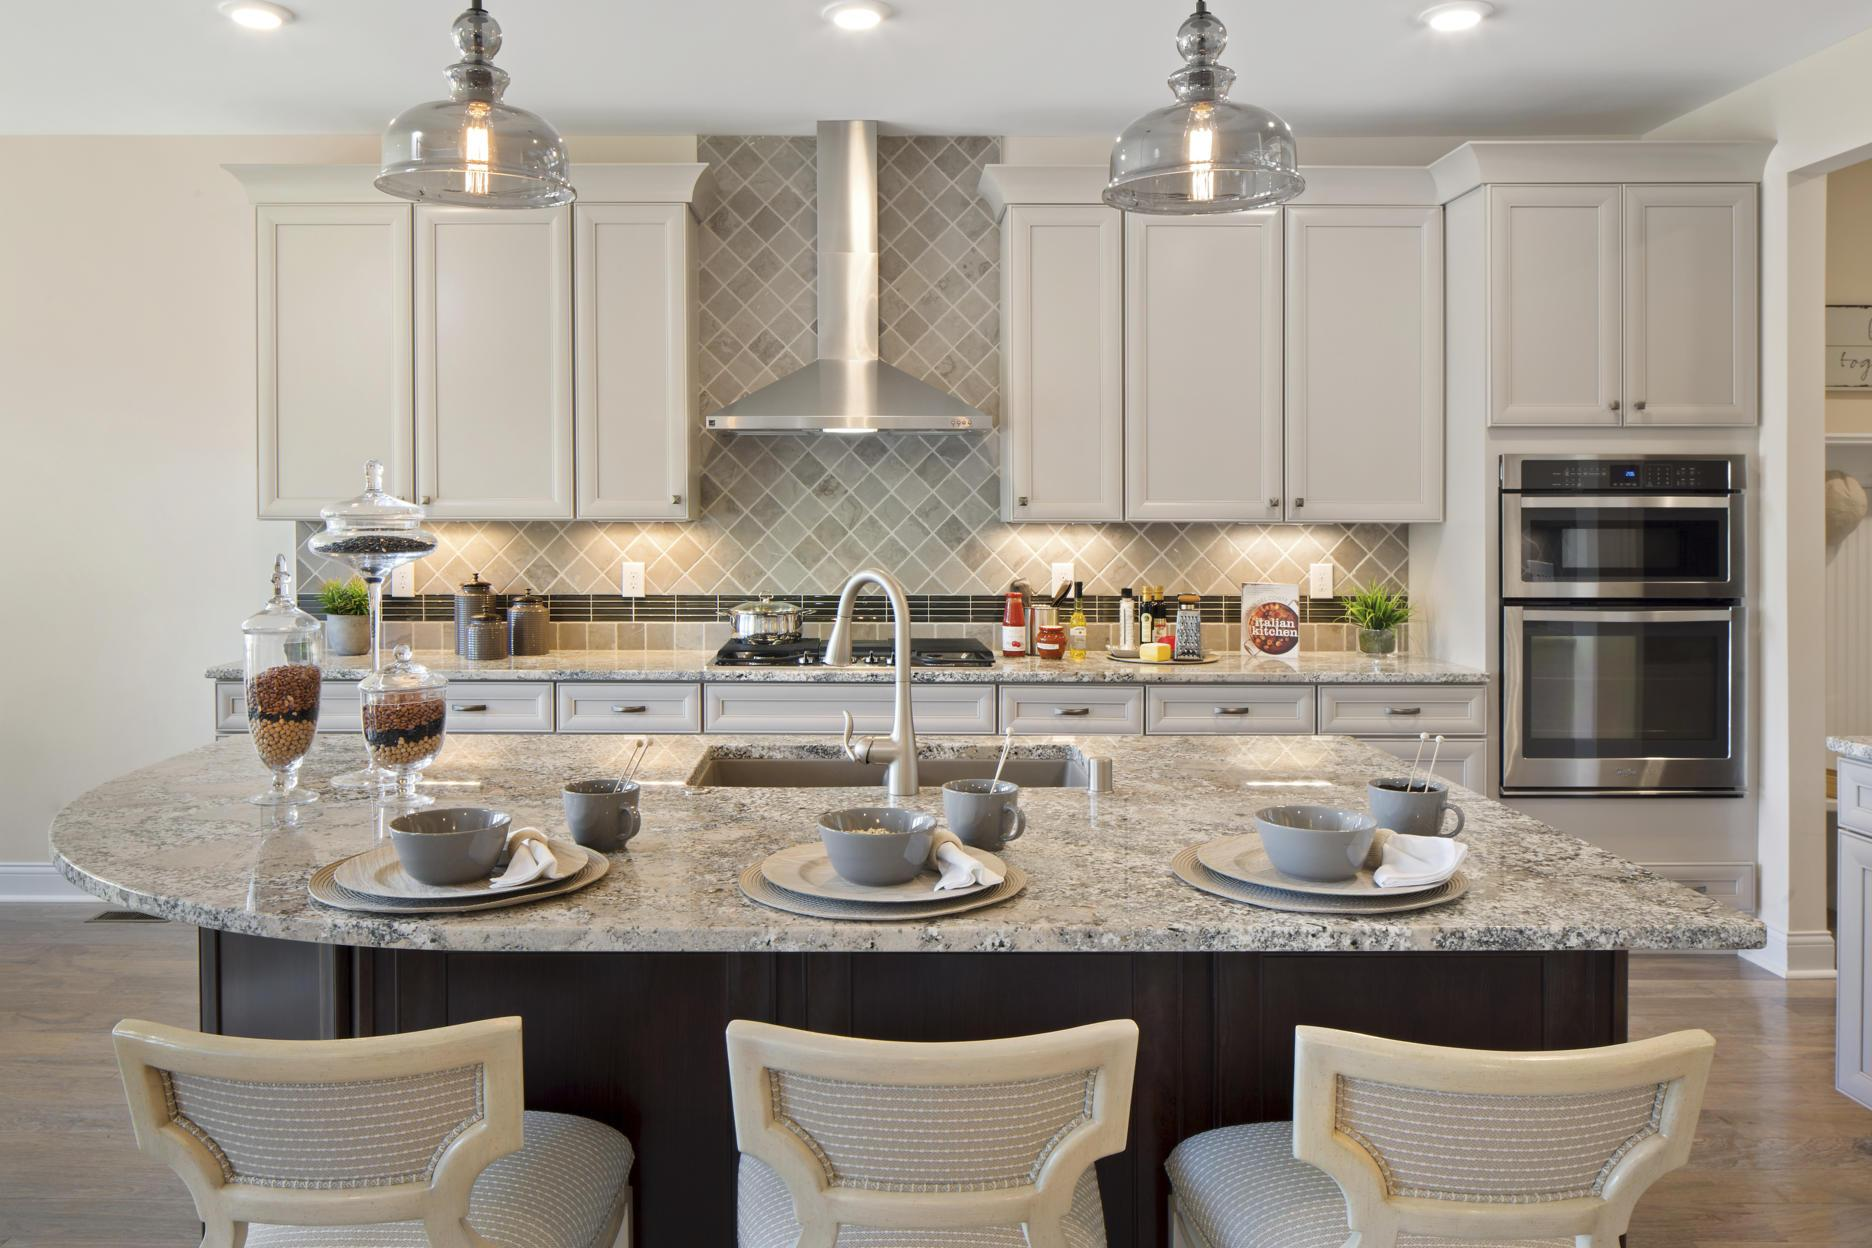 Kitchen featured in the Hialeah By Drees Homes in Cincinnati, KY